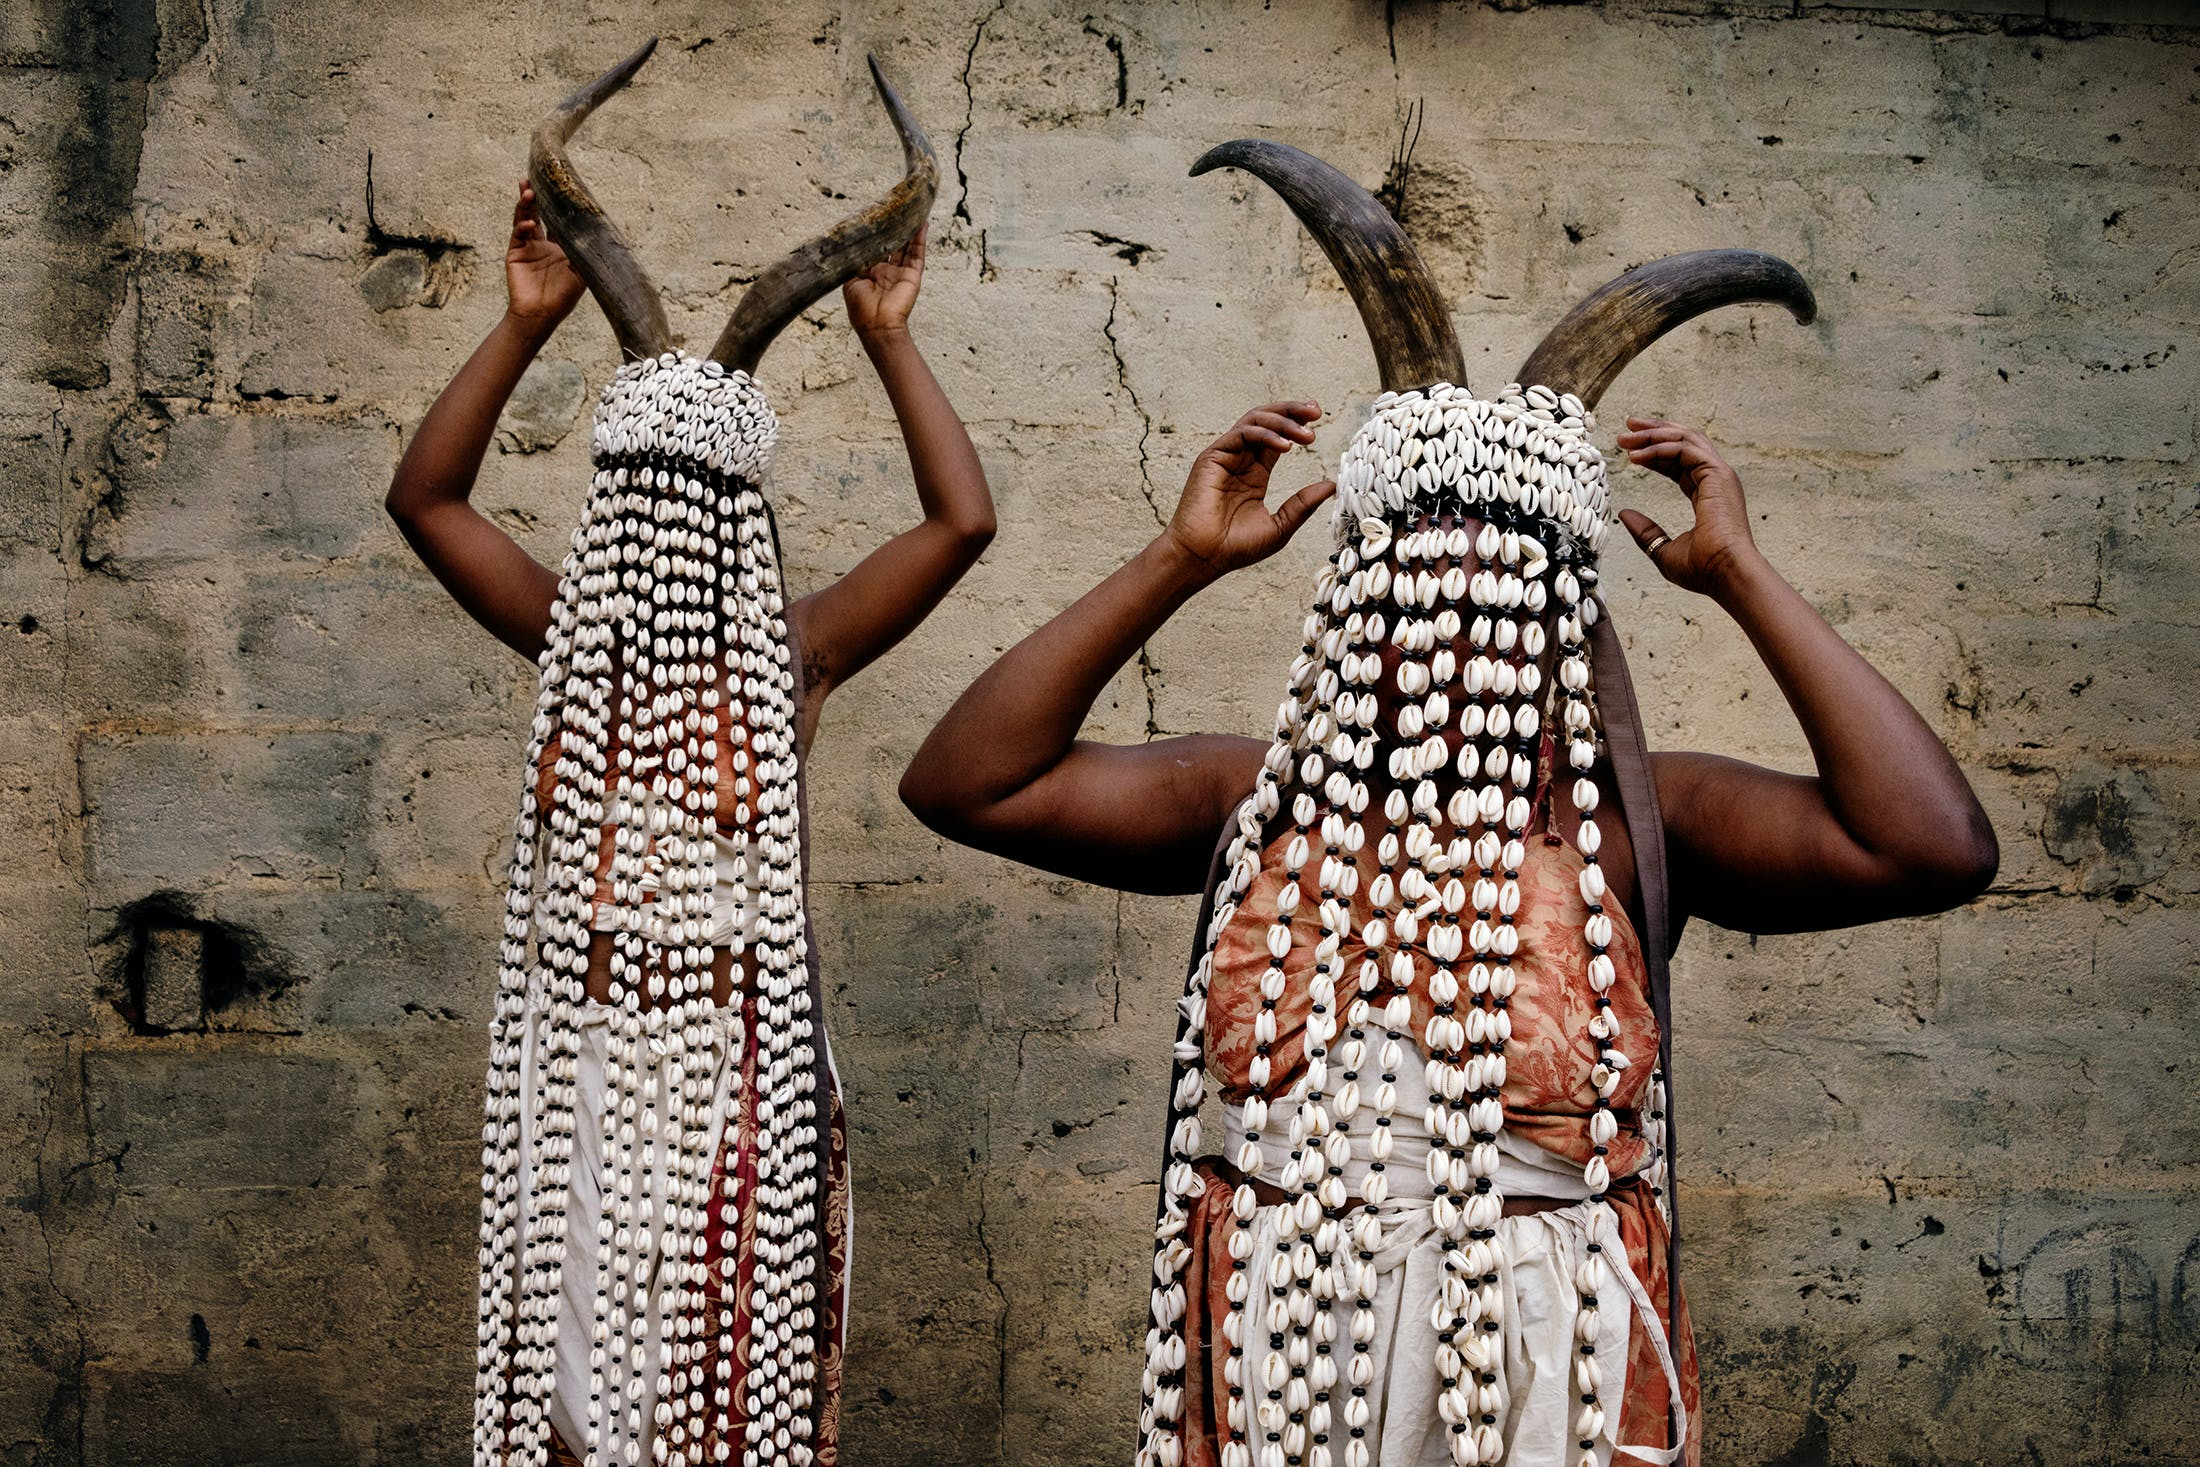 West Africa by Steve McCurry for Silversea